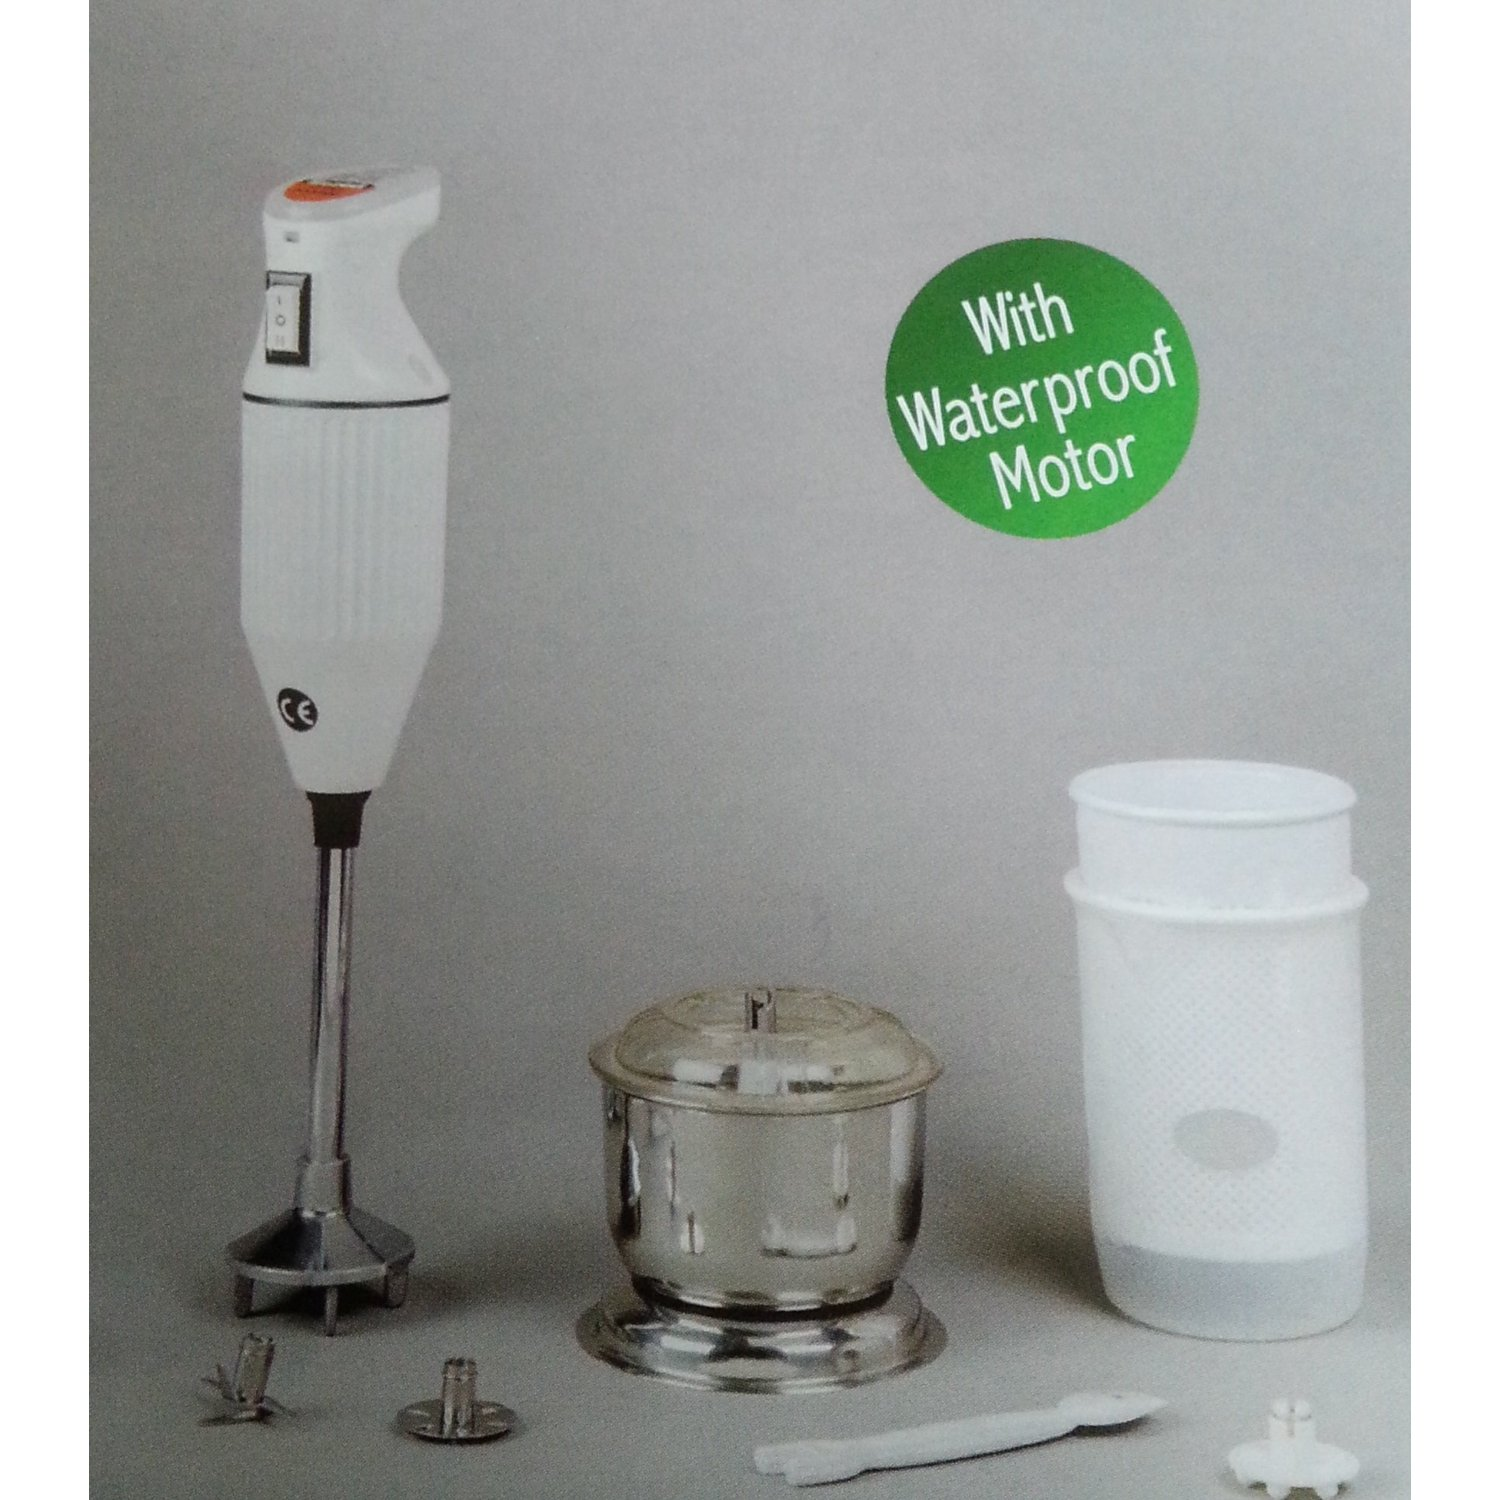 Signoracare 200 Watts Hand Blender Price In India Coupons And Signora Power Juicer With Attachments Waterproof Motor Image 4